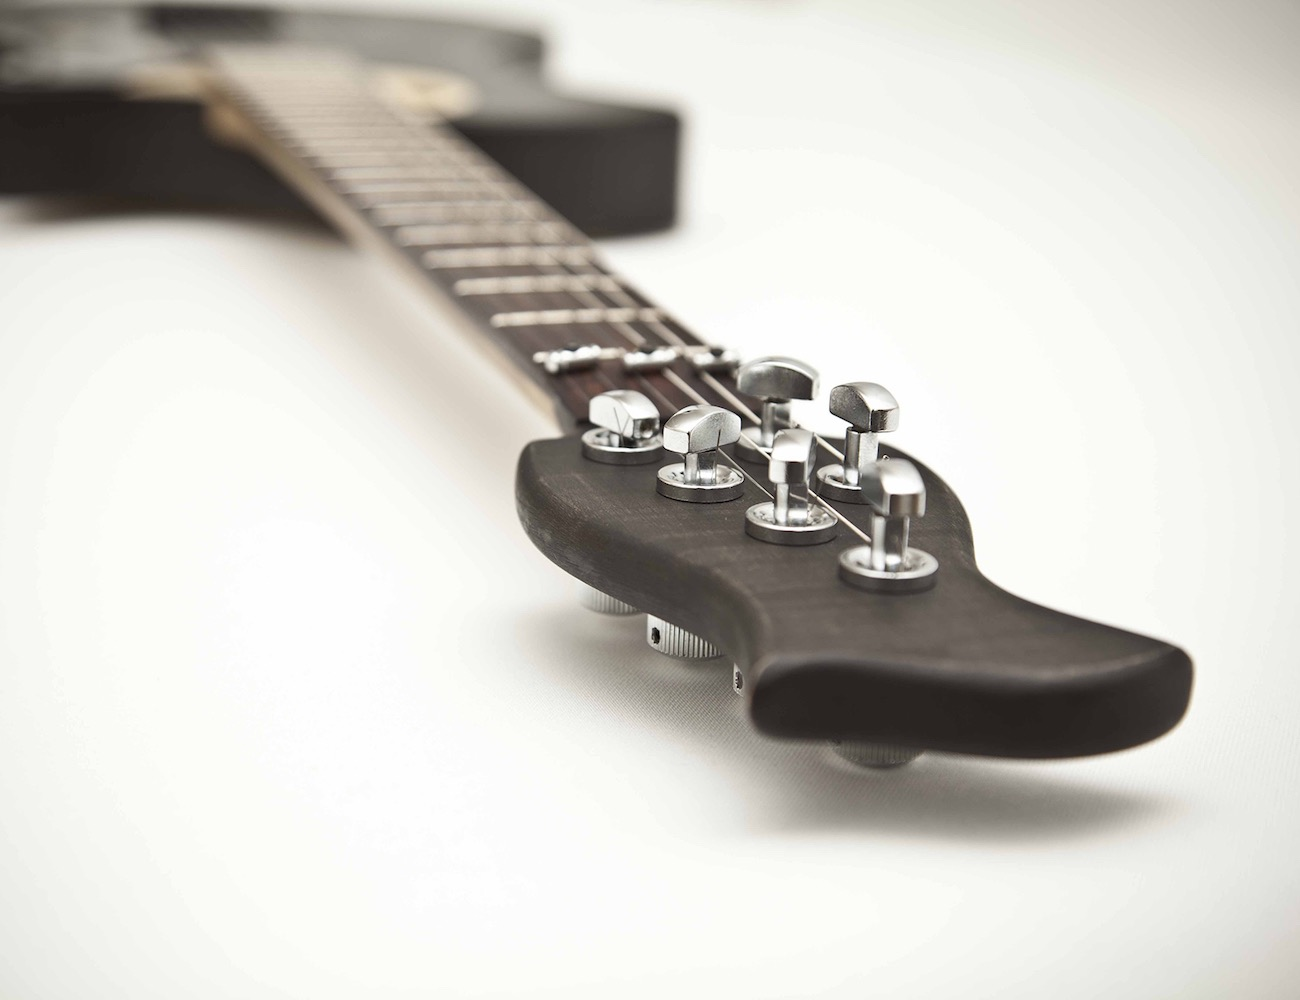 sensus-smart-guitar-by-mind-music-labs-05